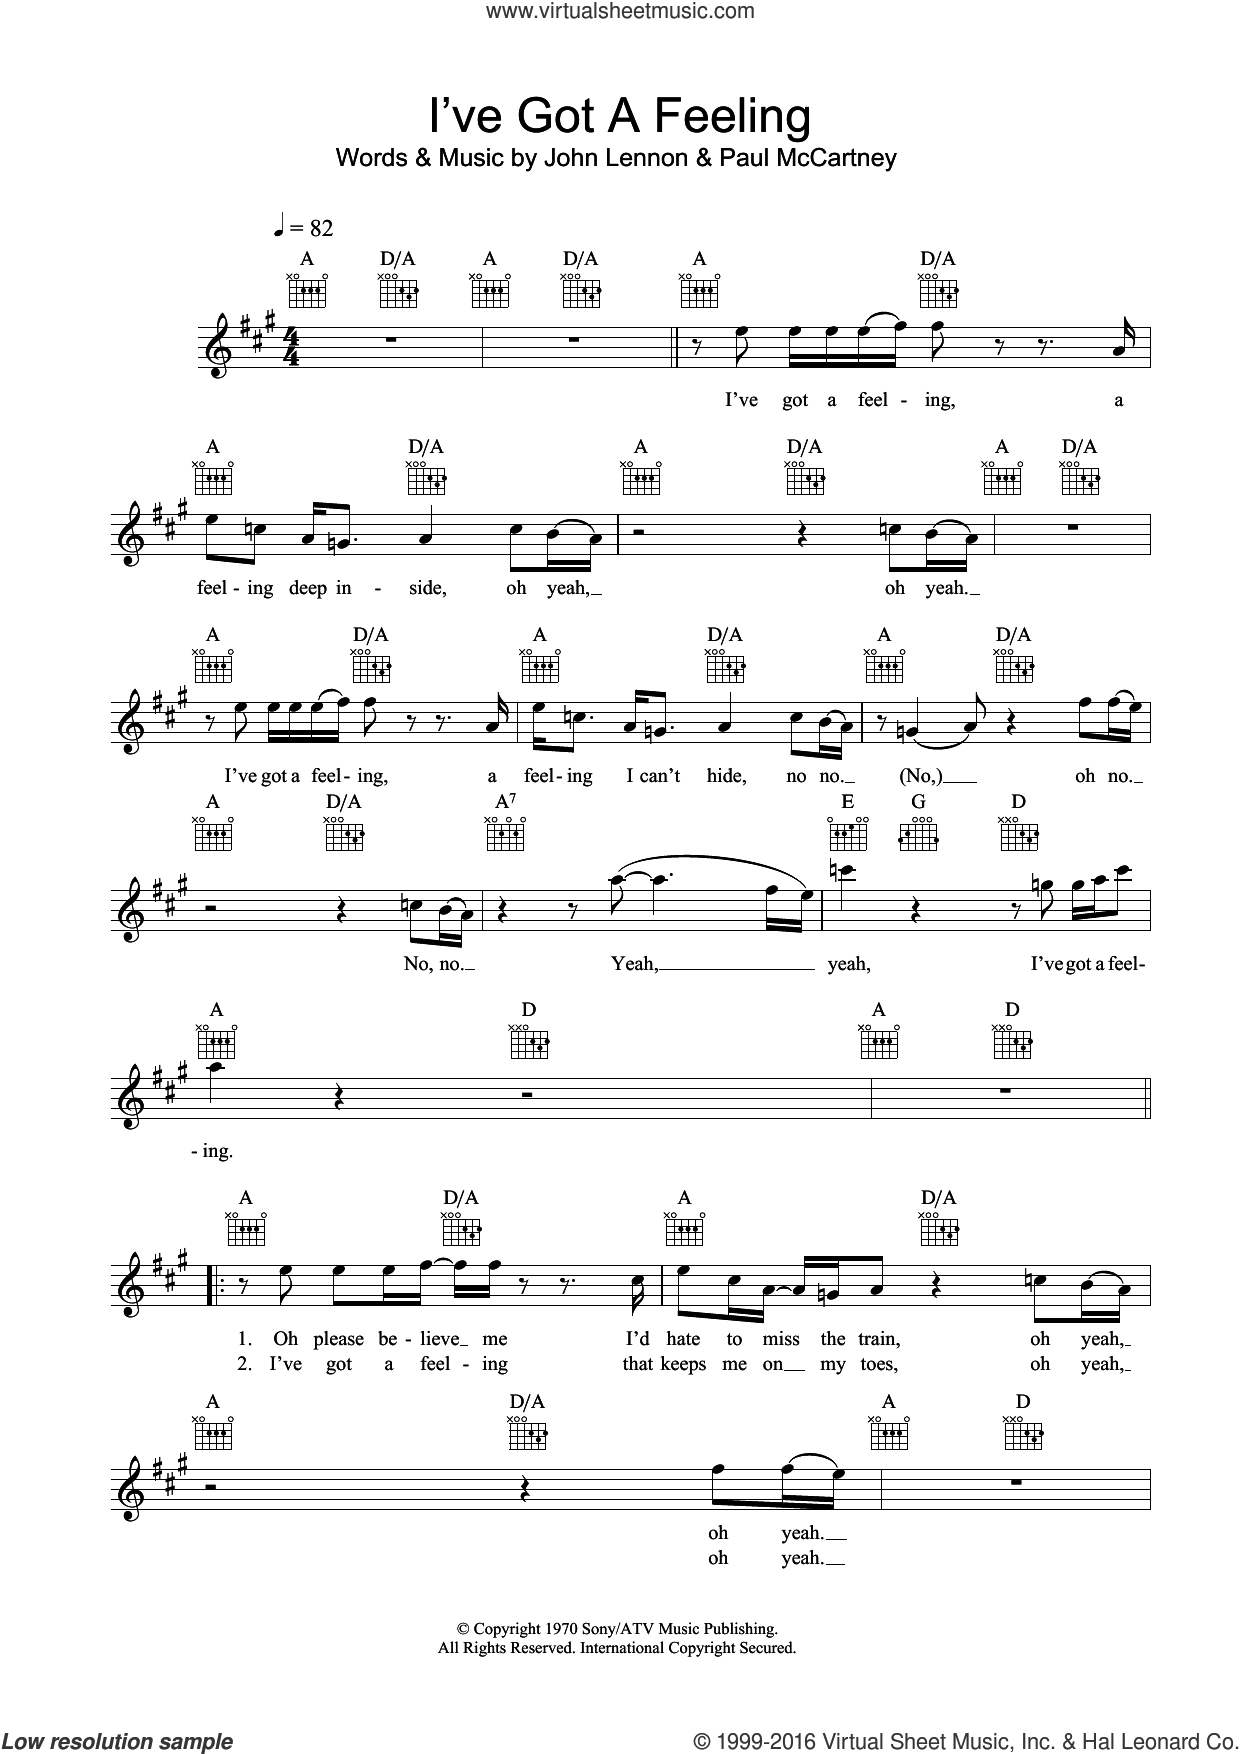 I've Got A Feeling sheet music for voice and other instruments (fake book) by The Beatles, John Lennon and Paul McCartney, intermediate skill level